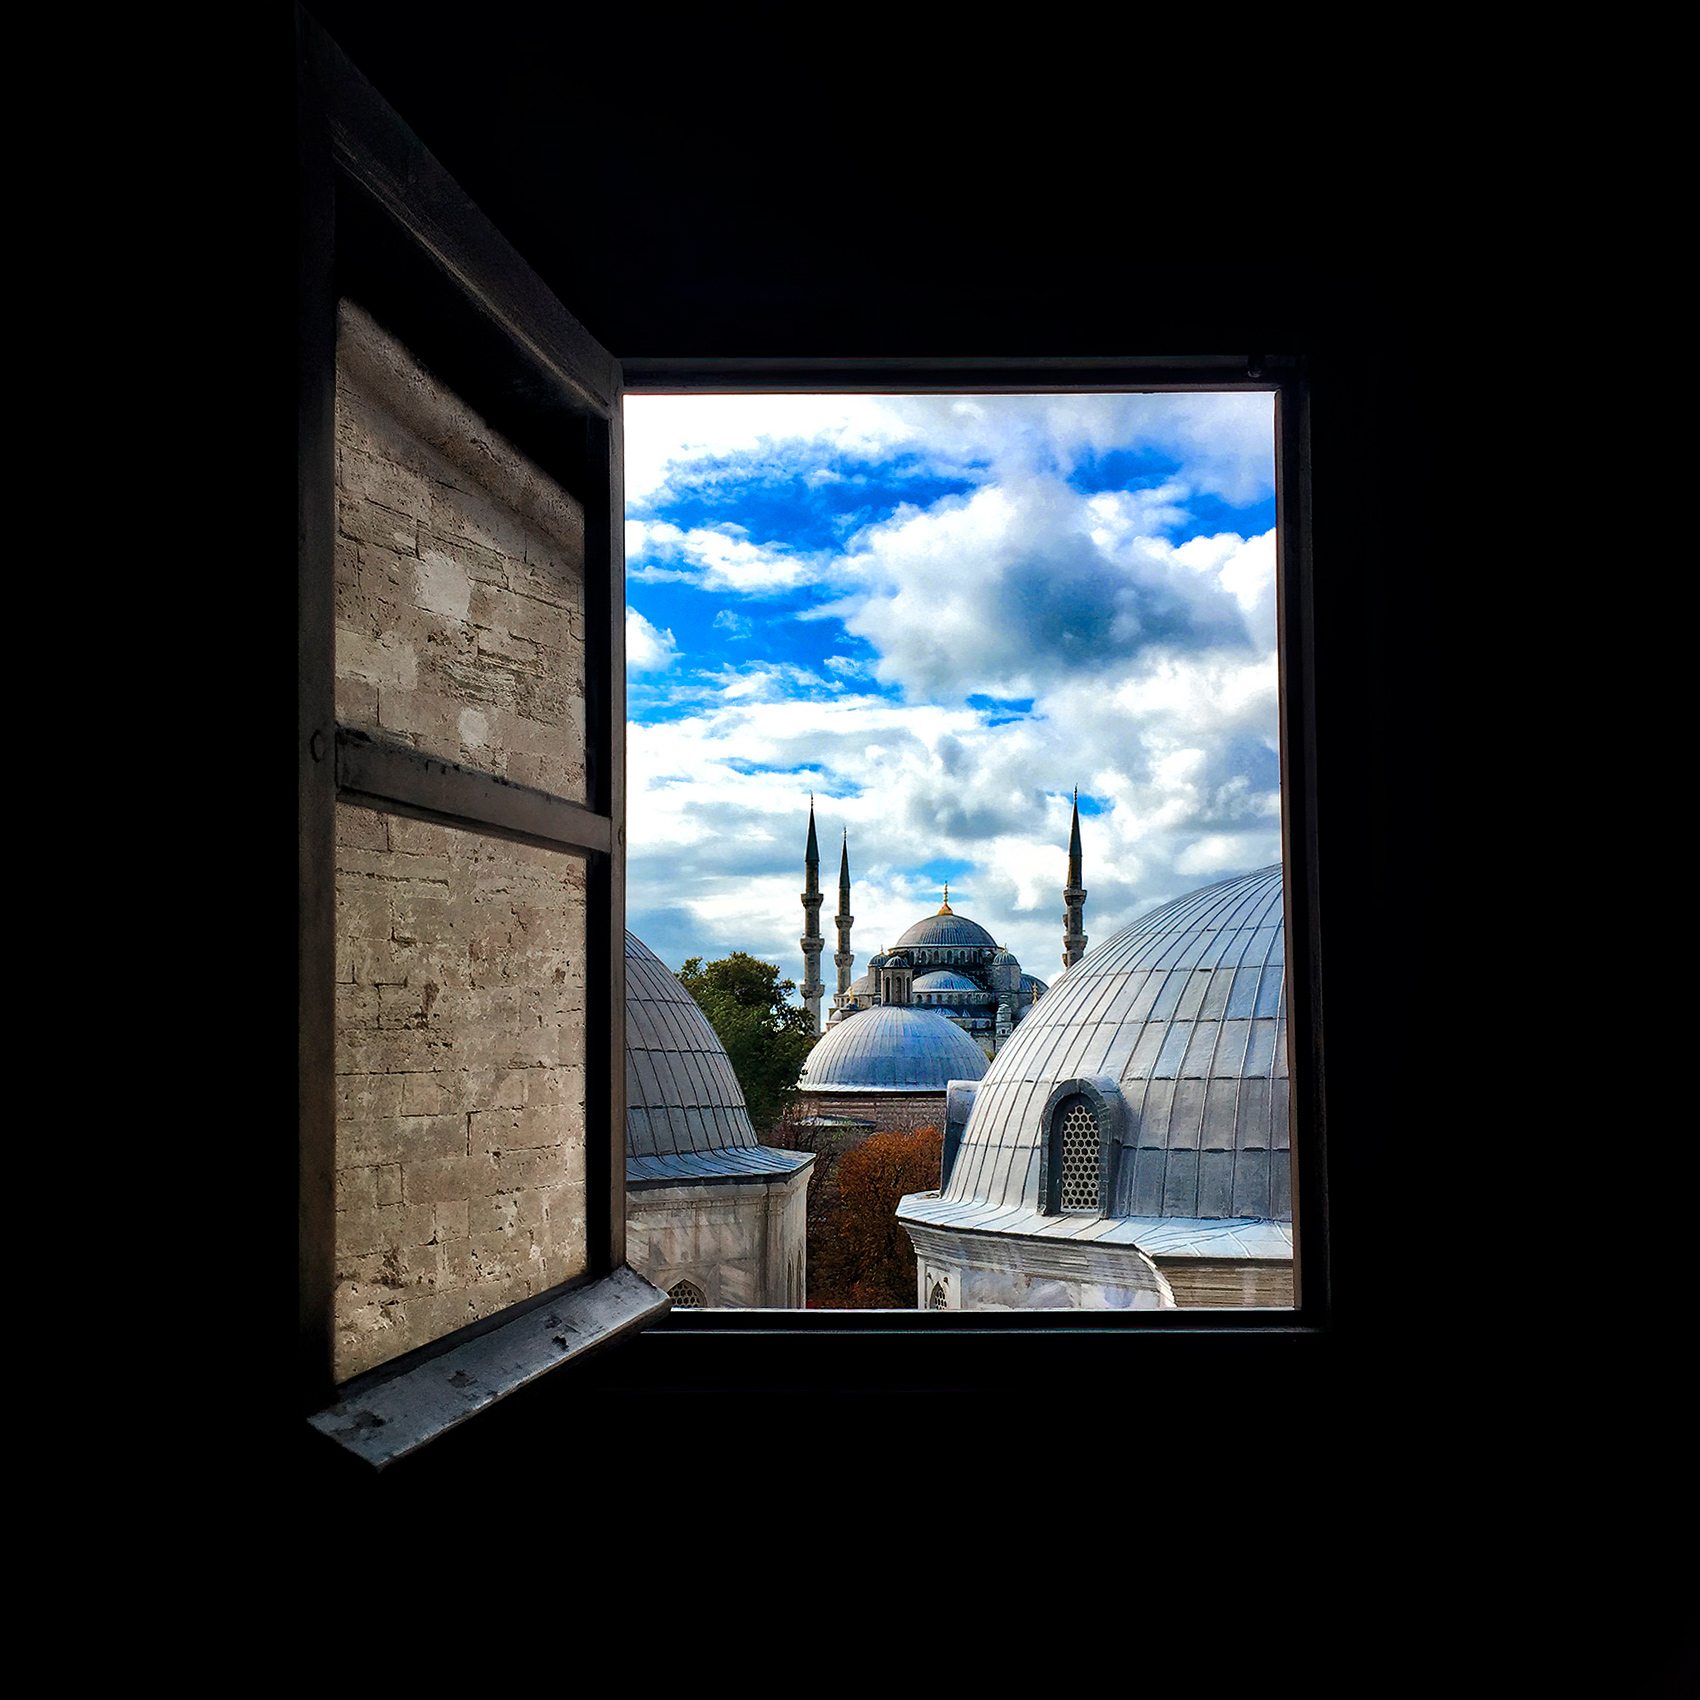 a beautiful view of the blue mosque from a window inside the hagia sofia mosque window in istanbul turkey.